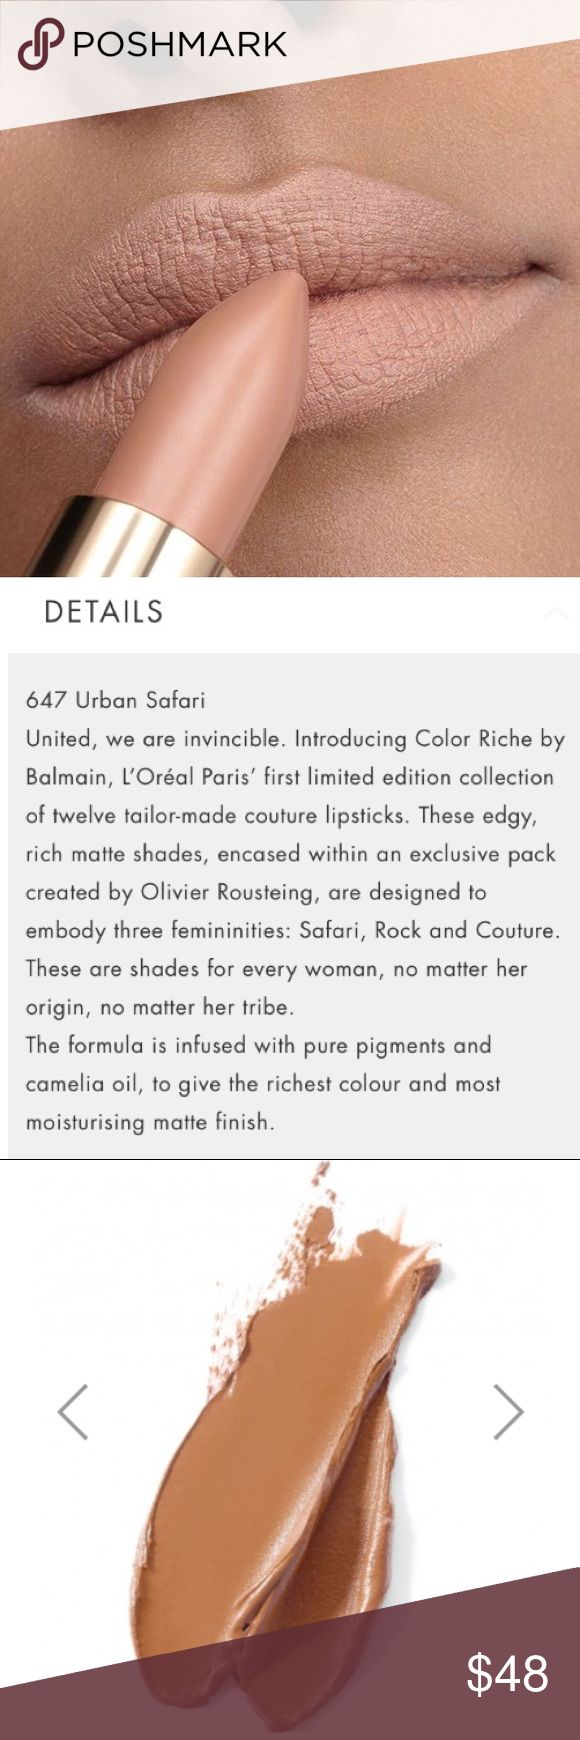 💄NEW💄Balmain X L'Oreal Confirmed PO-Urban Safari 💄NEW!💄Balmain X L'Oreal Limited Edition Confirmed Pre-Order for Shade 647 Urban Safari. 100% Authentic. The Formula is Infused w/Pure Pigments & Camelia Oil, to Give the Richest Colour & Moisturizing Matte Finish. THIS IS A PRE-SALE WILL SHIPBSAME DAY RECEIVED ON OR BEFORE 10-01.🚫Trades.     🚫Price Firm Sephora Makeup Lipstick